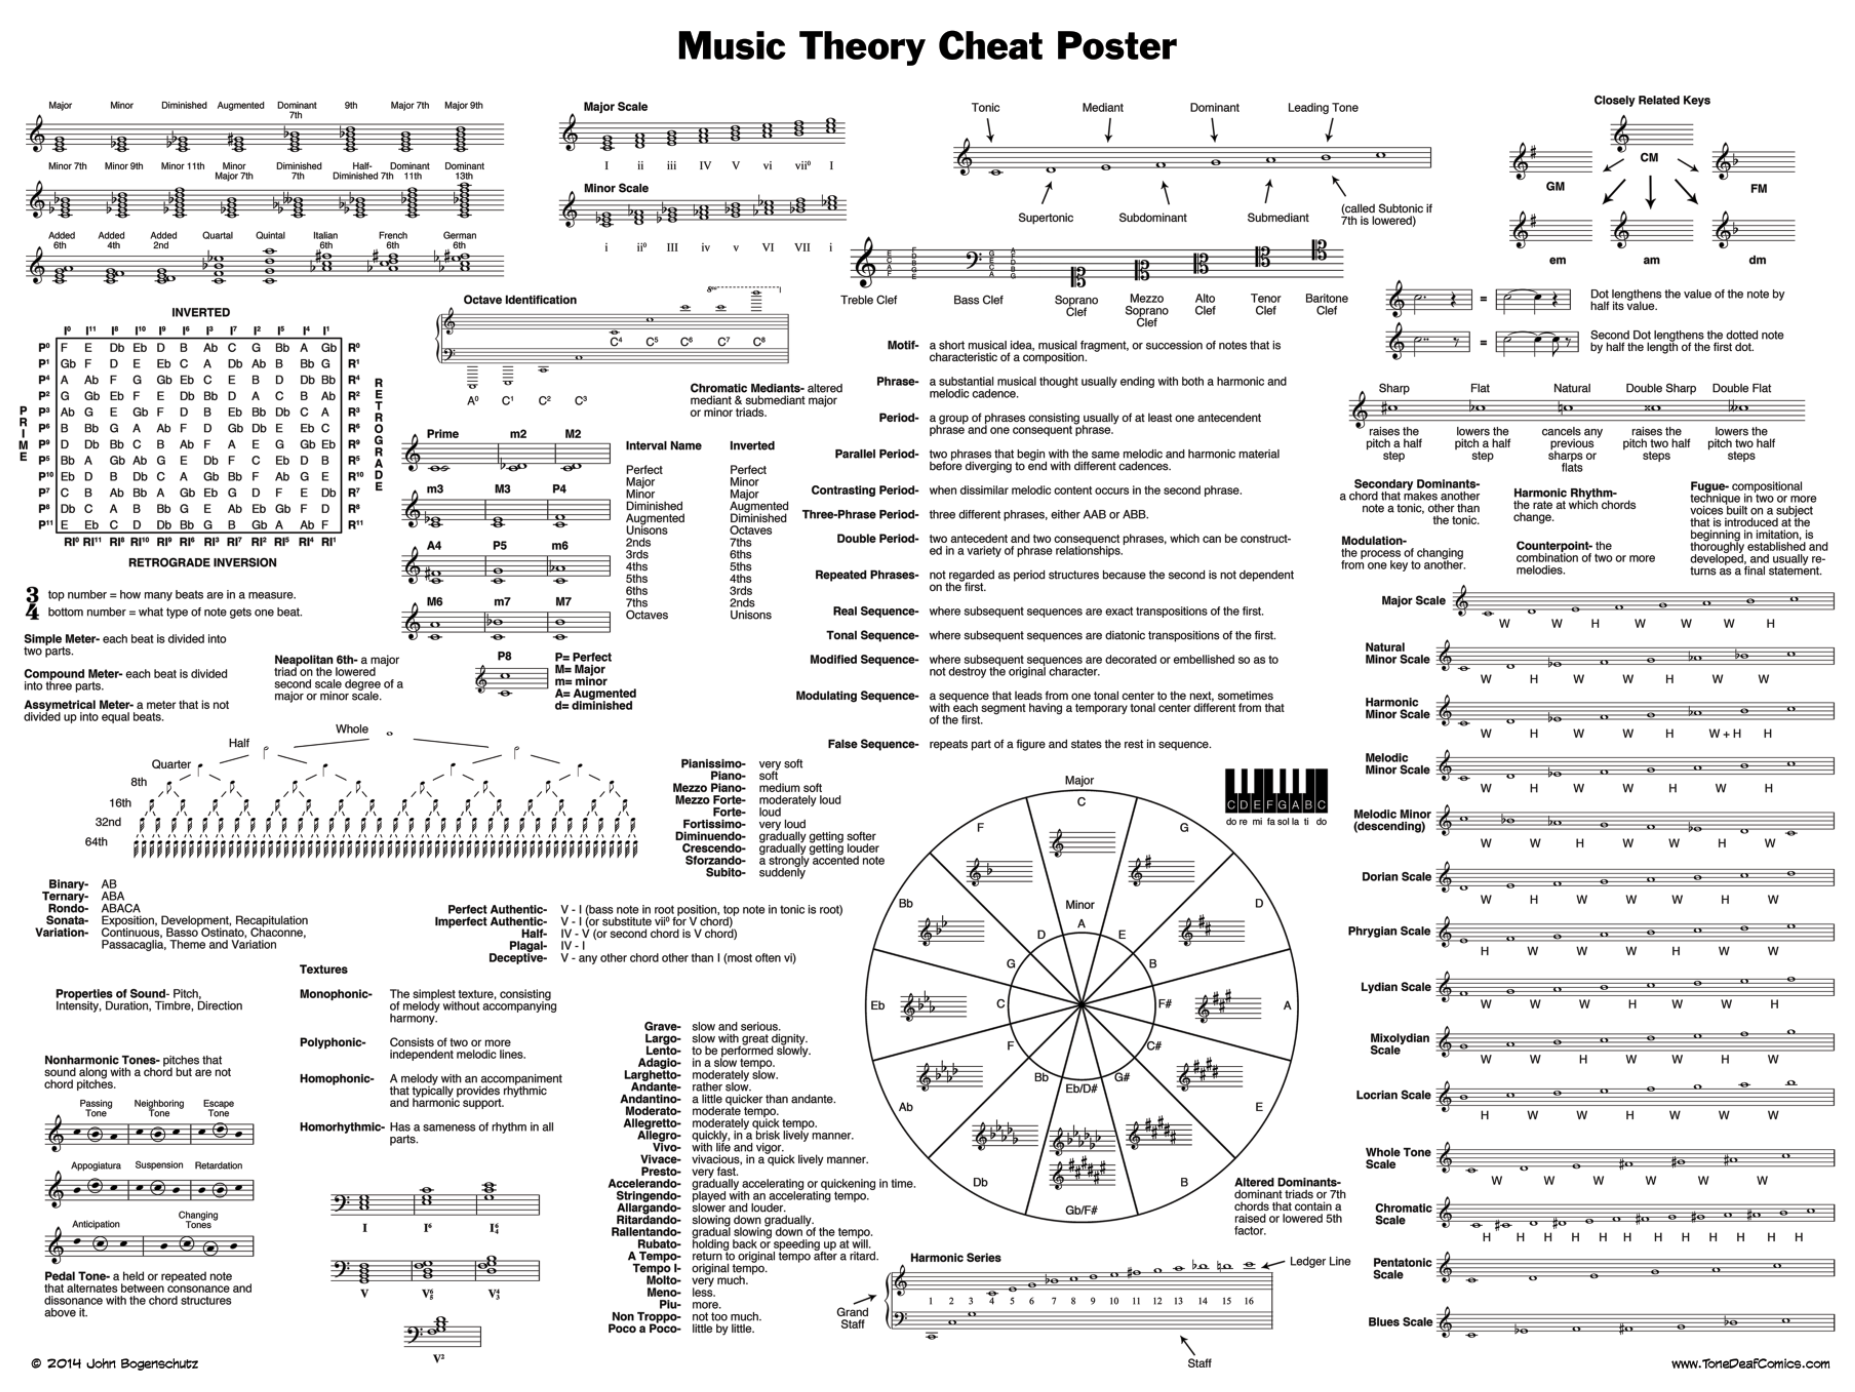 24 x 18 music theory cheat poster music theory